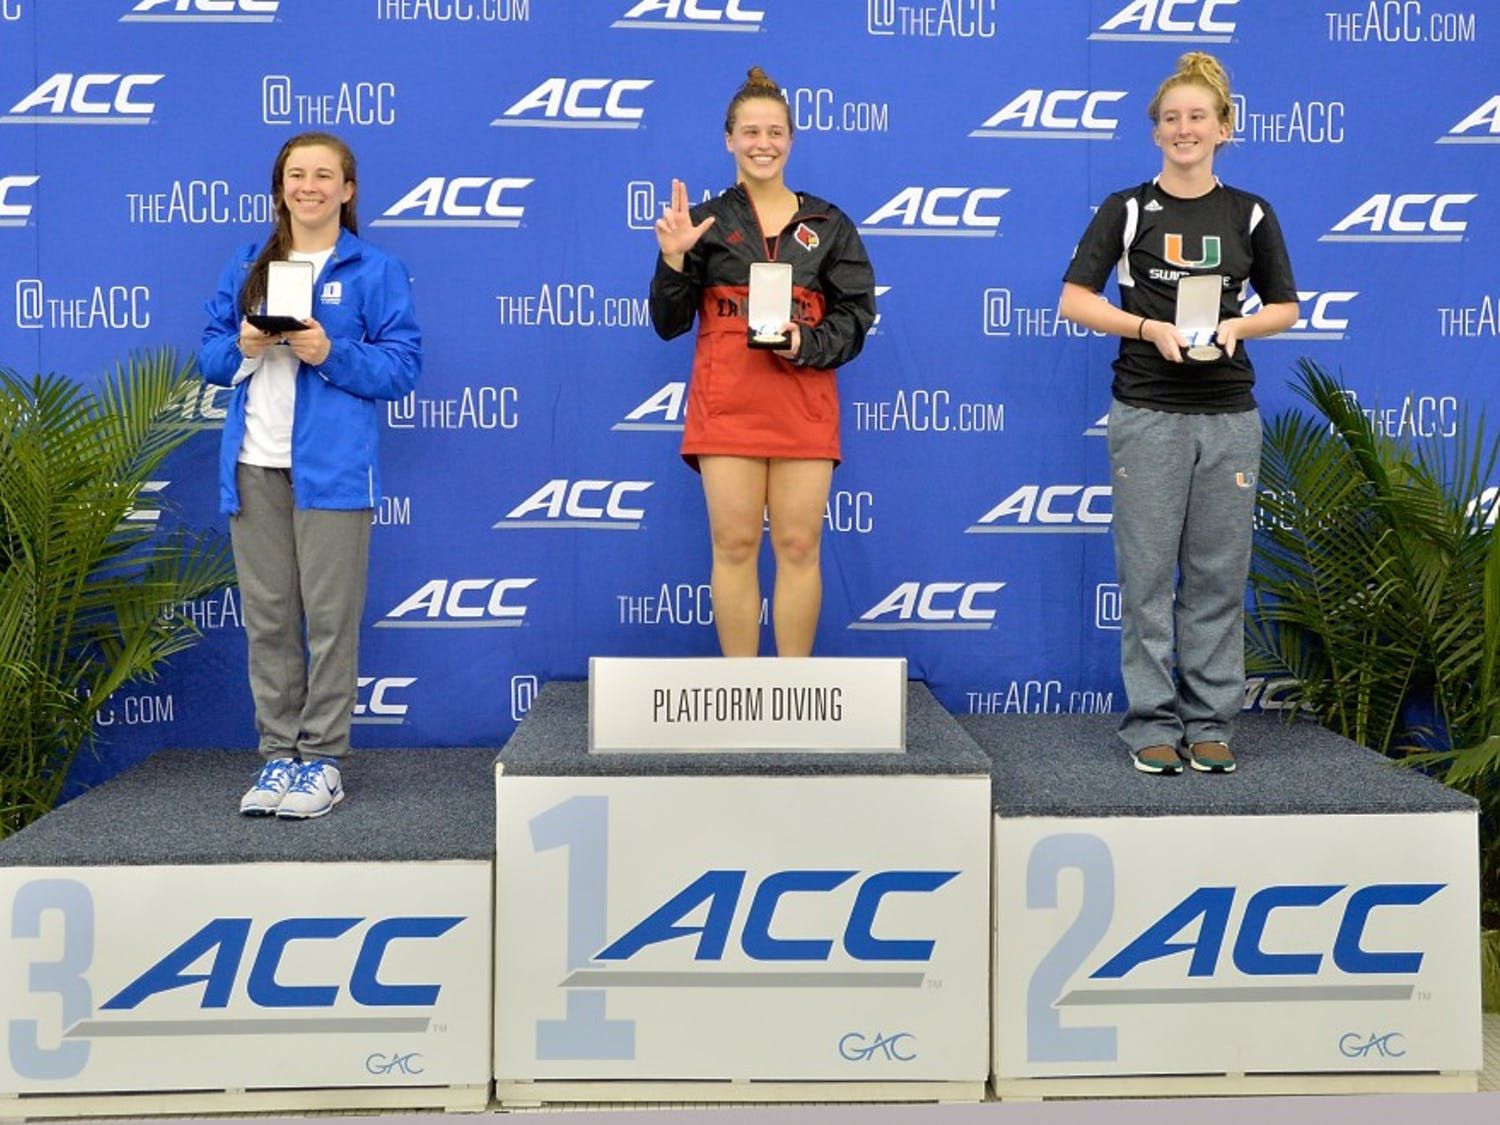 Louisville's Andrea Acquista, first, Miami's Wally Layland, second, and Duke's Maryellen Targo place in the platform diving during the ACC Diving and Women's Swimming Championships in Greensboro, N.C., Saturday, Feb. 20, 2016. (Photo by Sara D. Davis, the ACC.com)